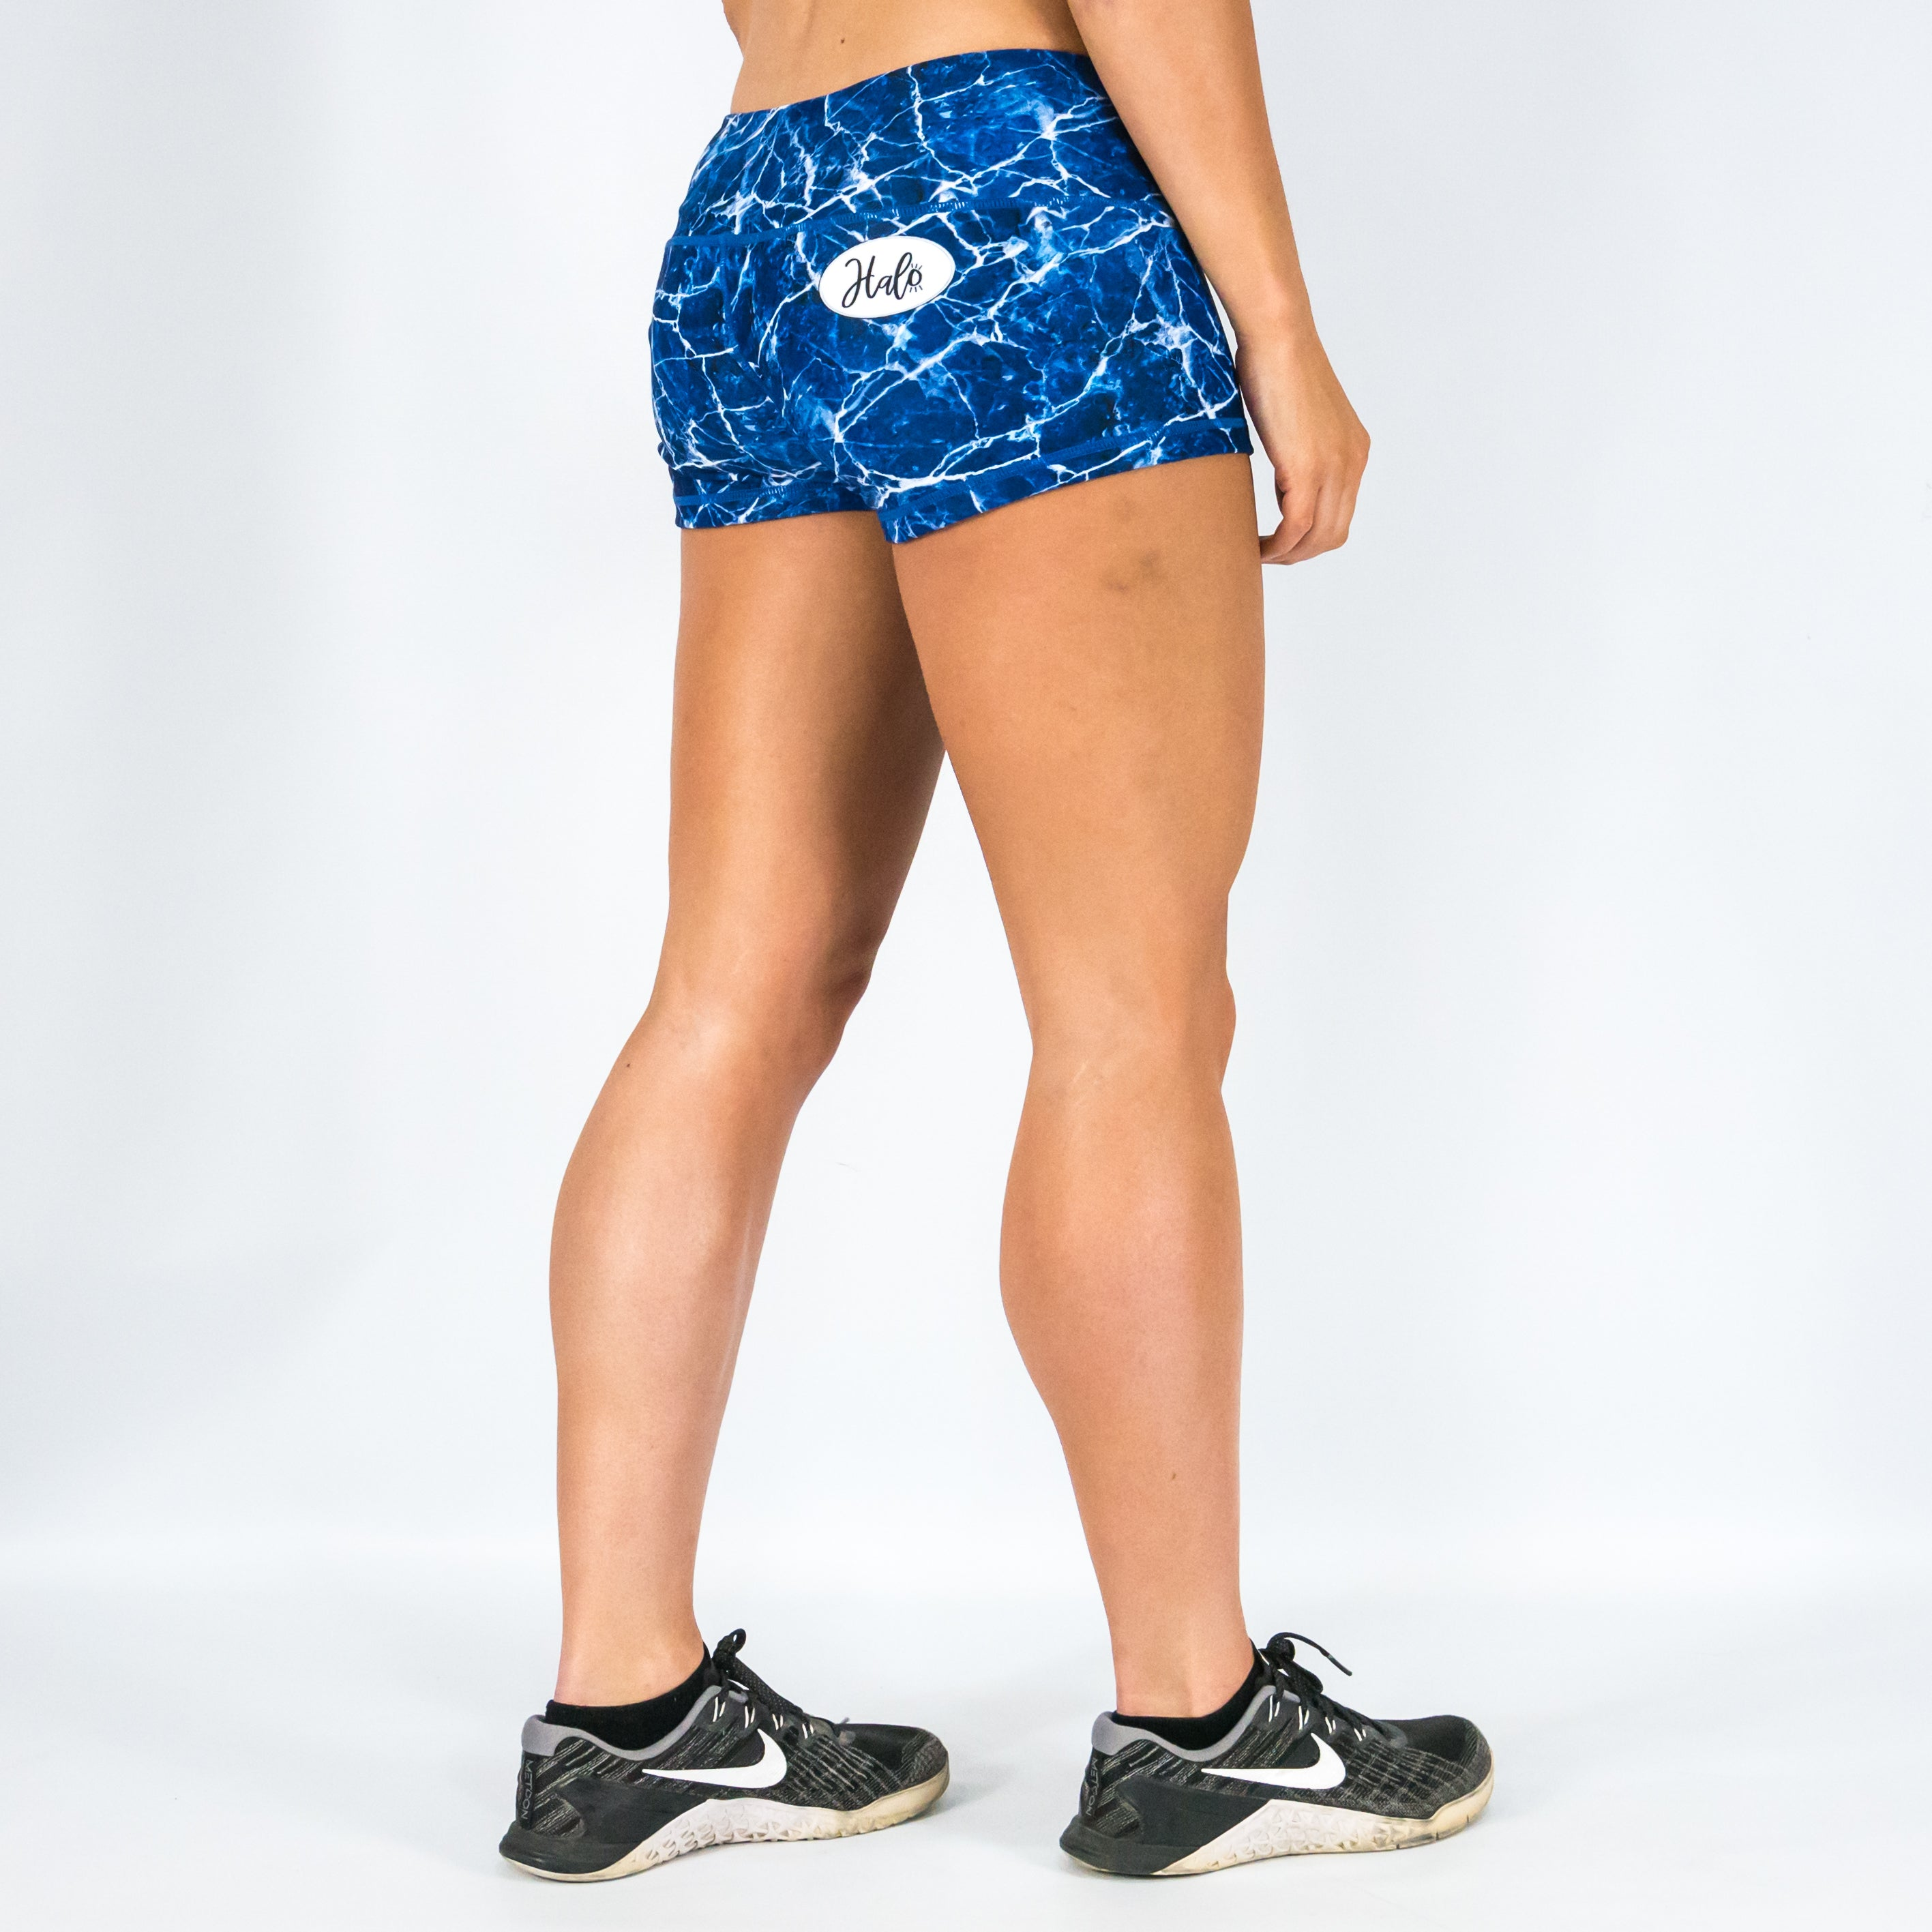 9317c02b2a0fb Halo Metamorphic Marble Low Rise Booty Shorts – Halo Fitness